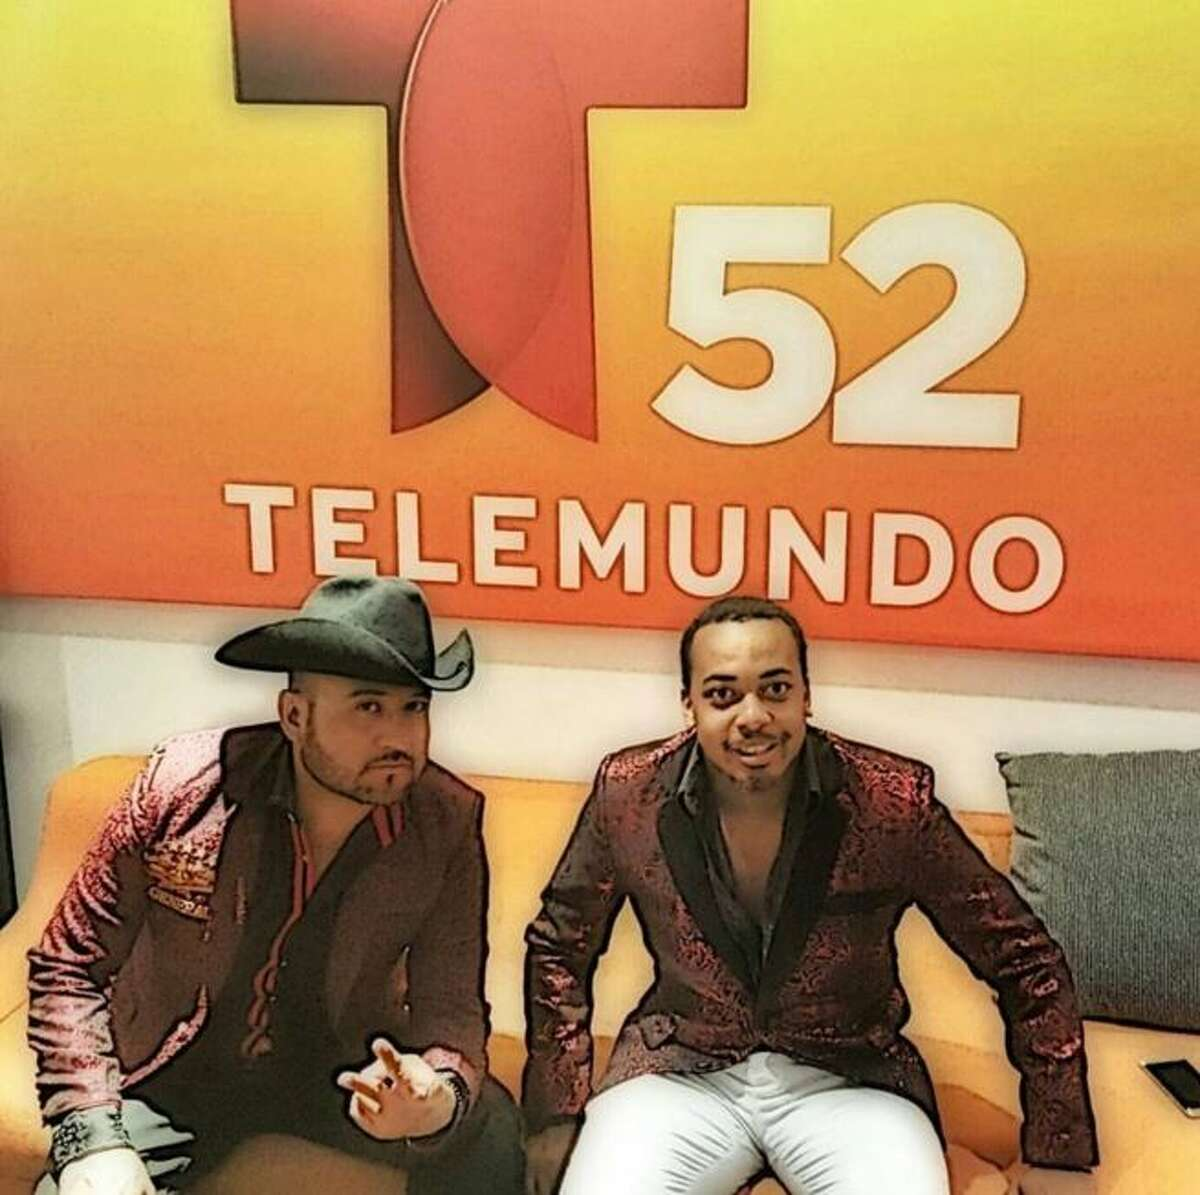 He told Estrella TV how he became an honorary member of the community when he crashed his neighbor's norteno band practice session. Lowery started playing drums with the group, then became the front man of his own band - El Compa Negro and Los Mas Poderosos.